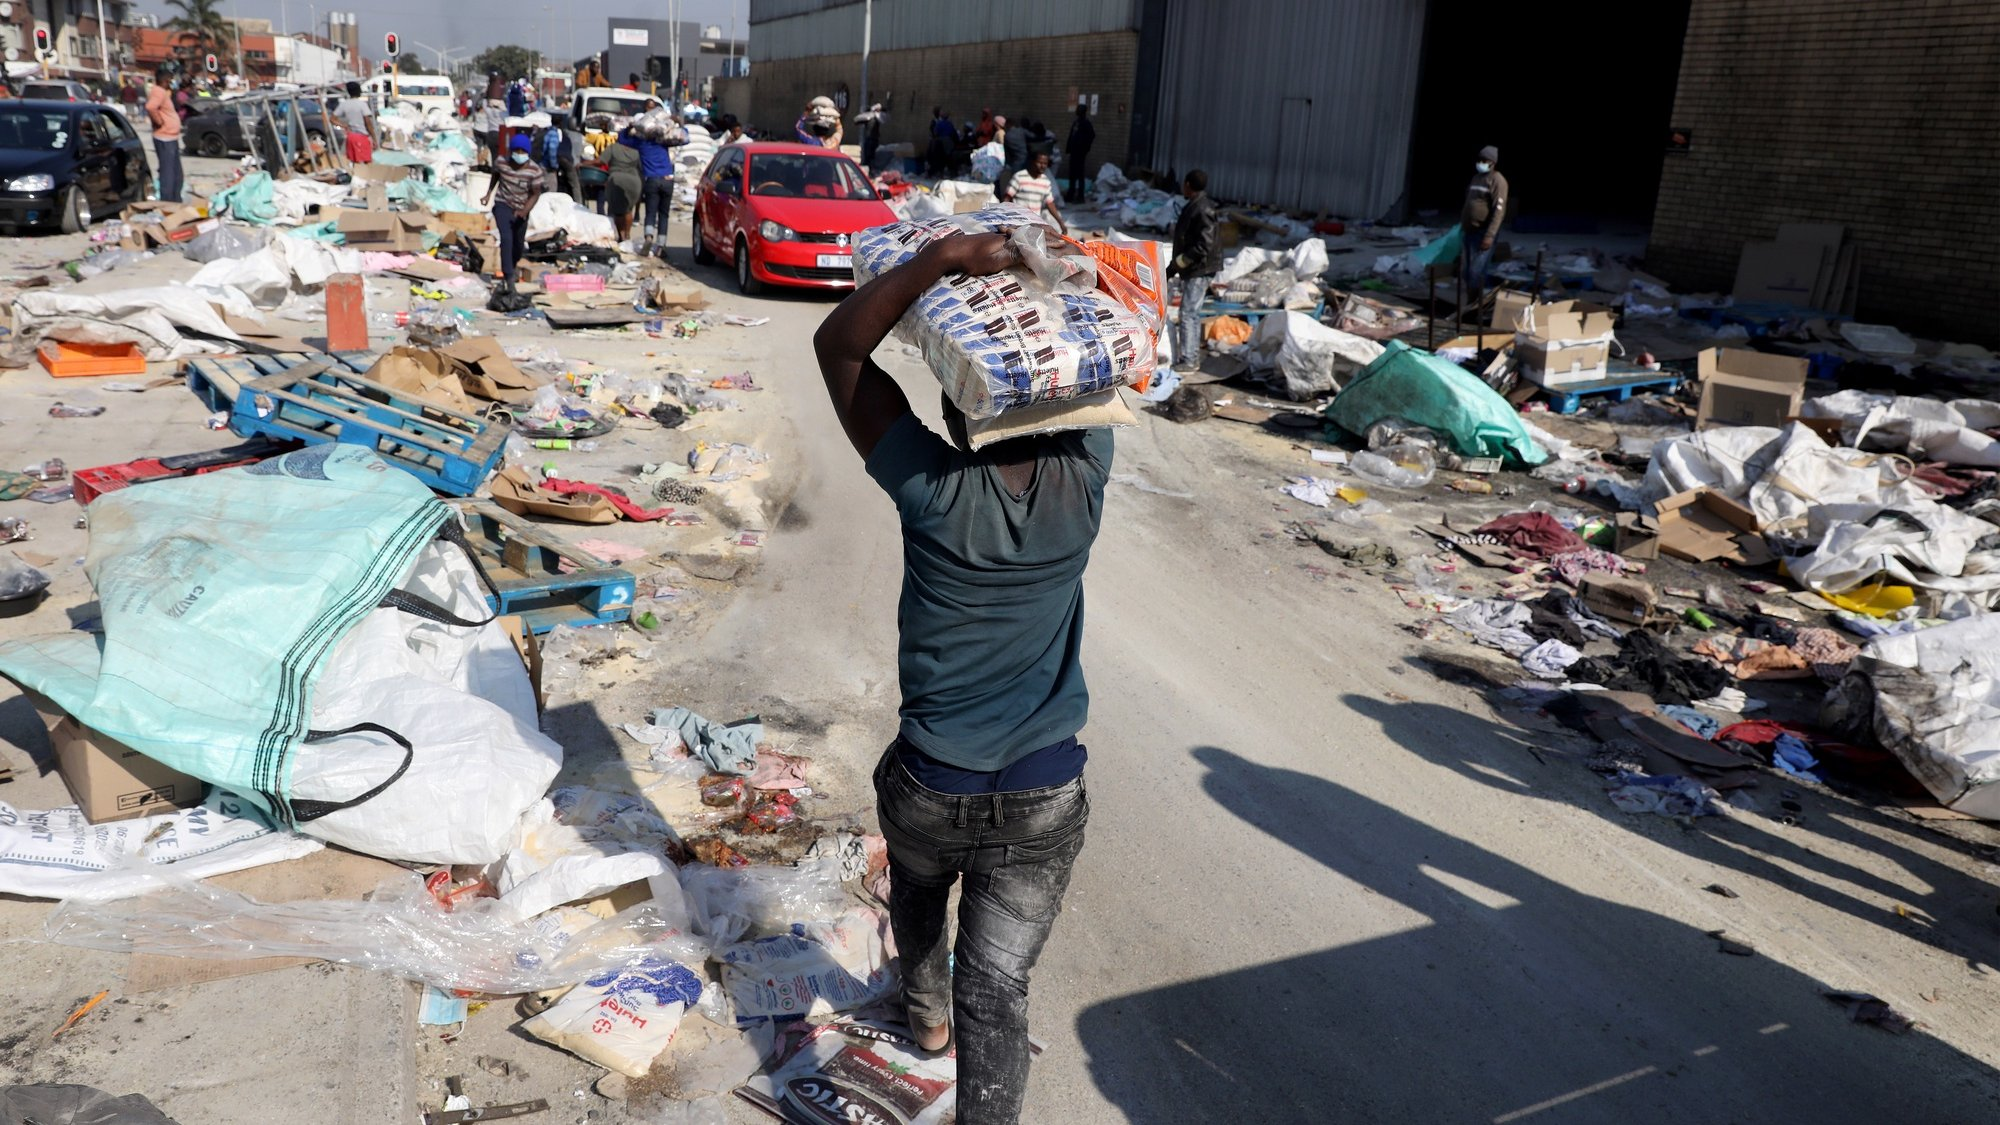 epa09346663 Looters continue to loot goods from a sugar warehouse in Mobeni as looting continues, in Durban, South Africa, 15 July 2021. Days of looting in both Johannesburg and Durban have caused billions of Rands of damage as an estimated 200 shopping malls where effected.  EPA/STR